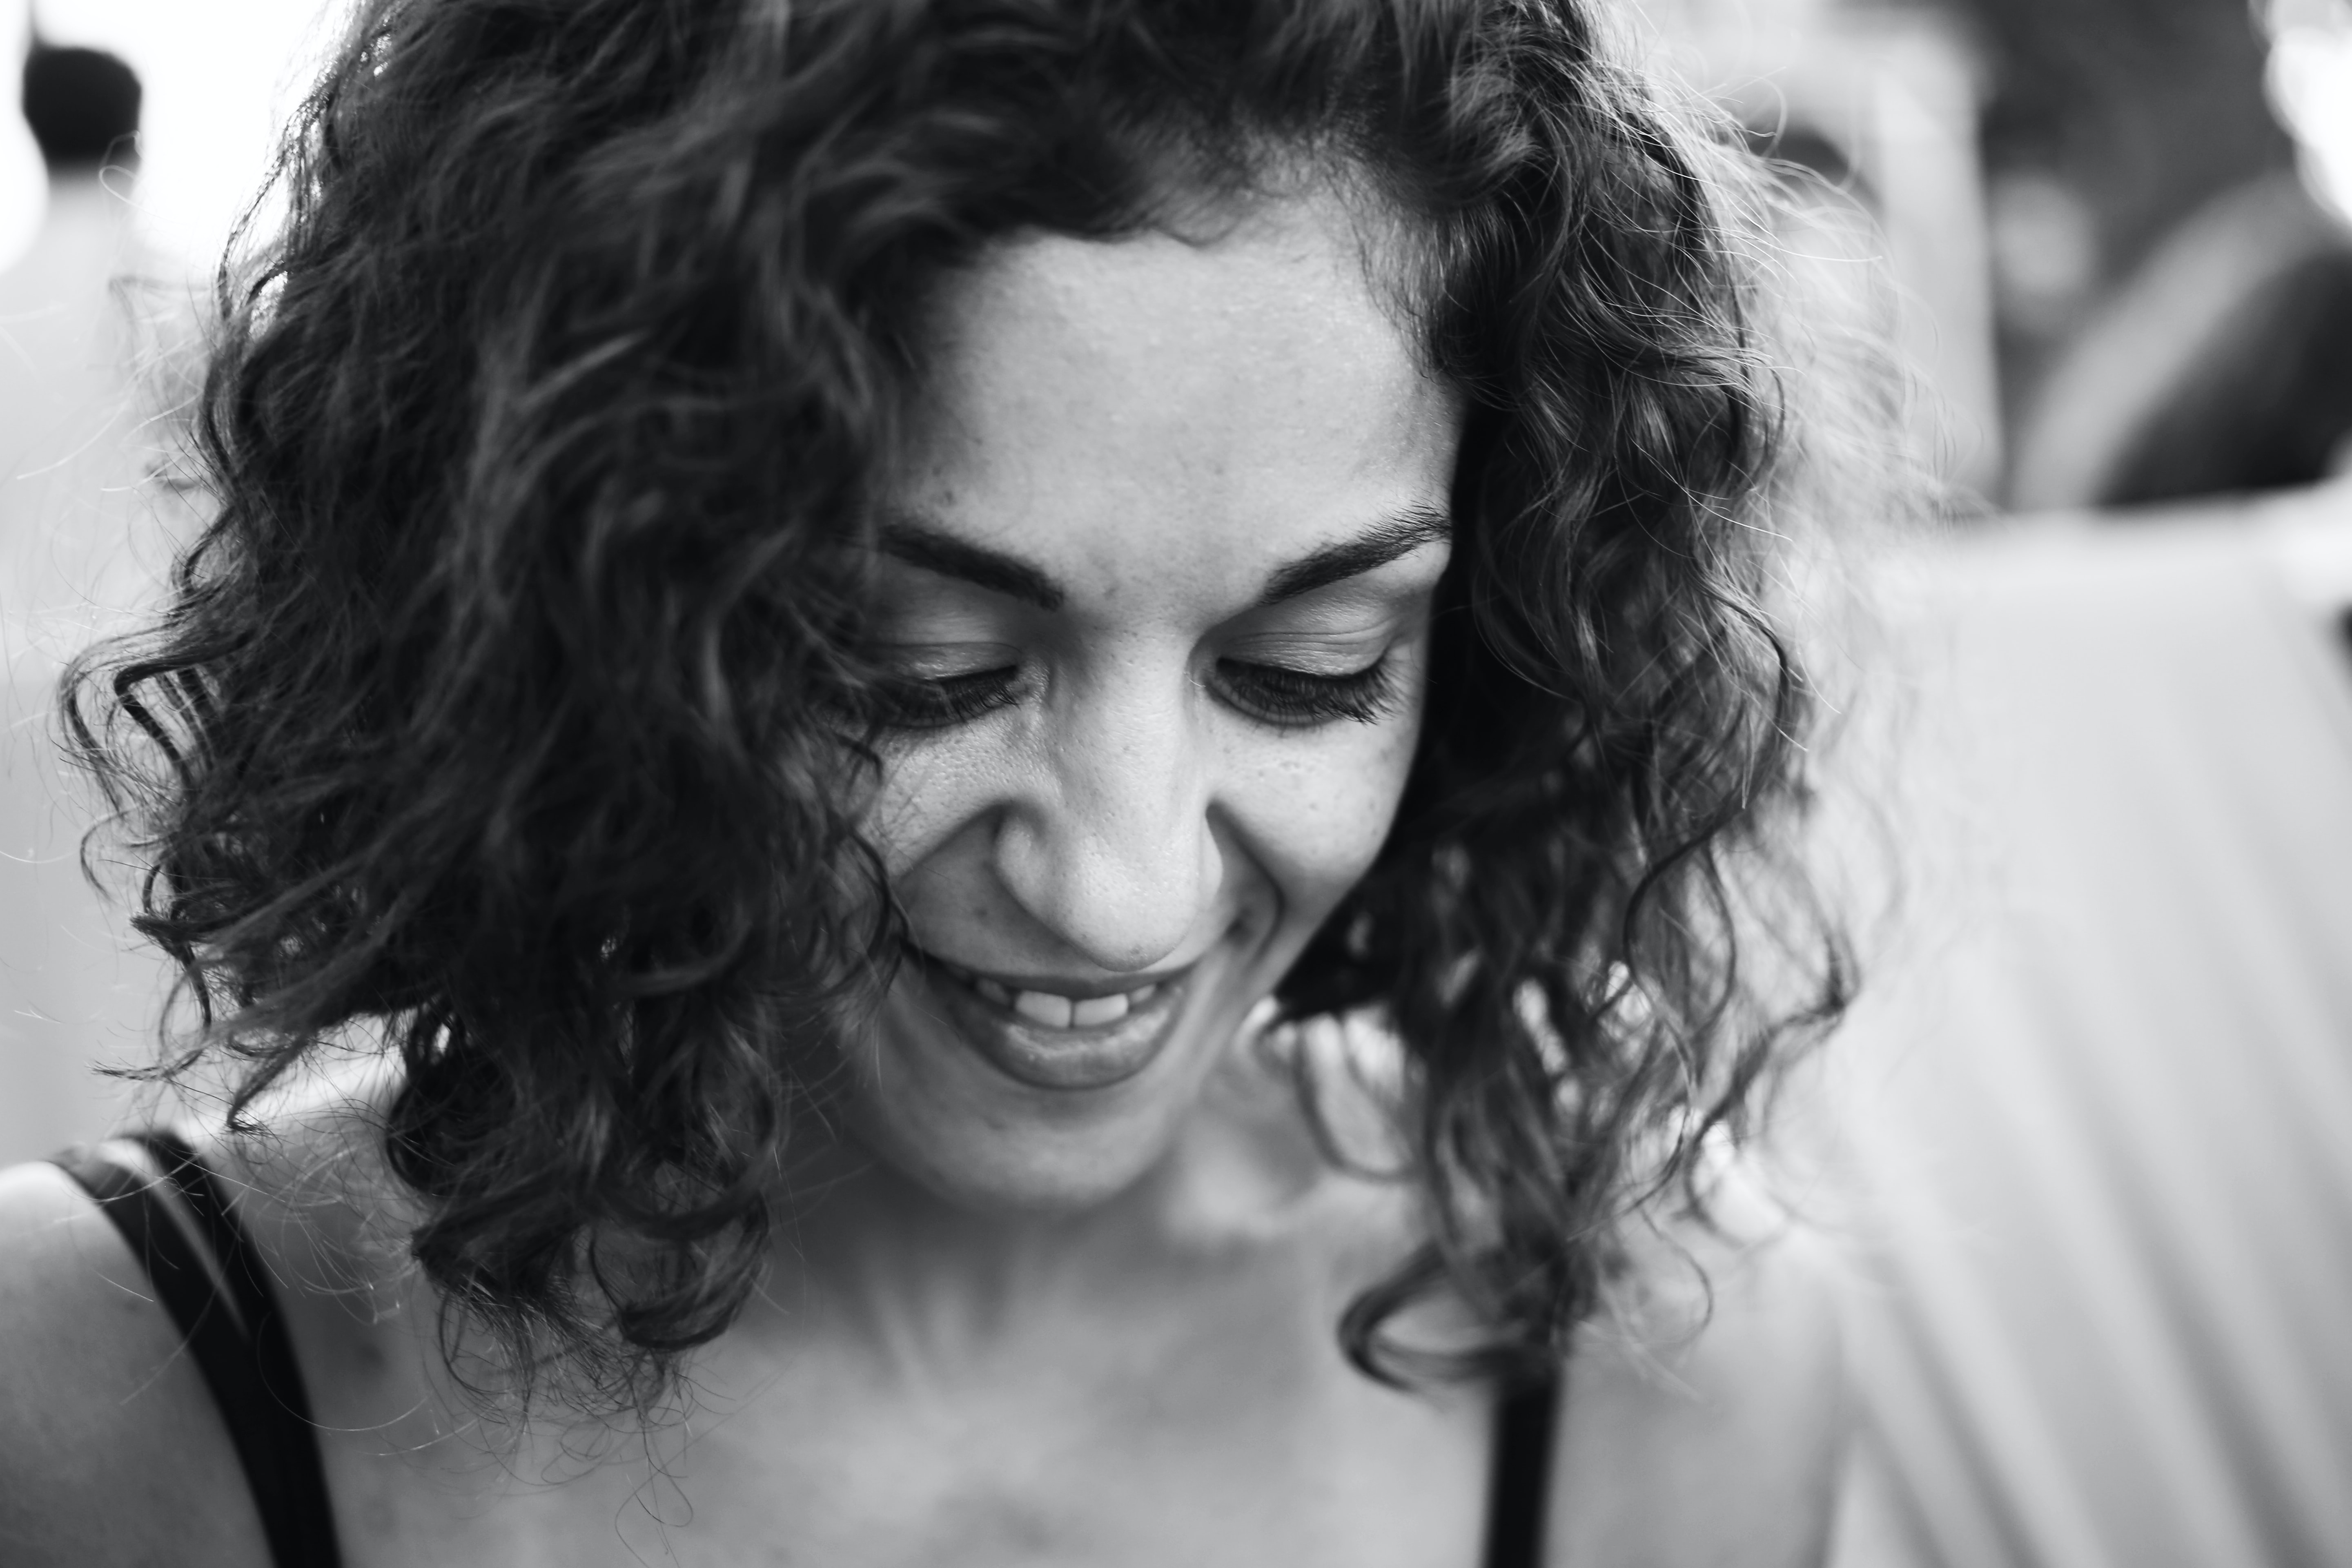 grayscale photo of smiling woman wearing spaghetti strap top